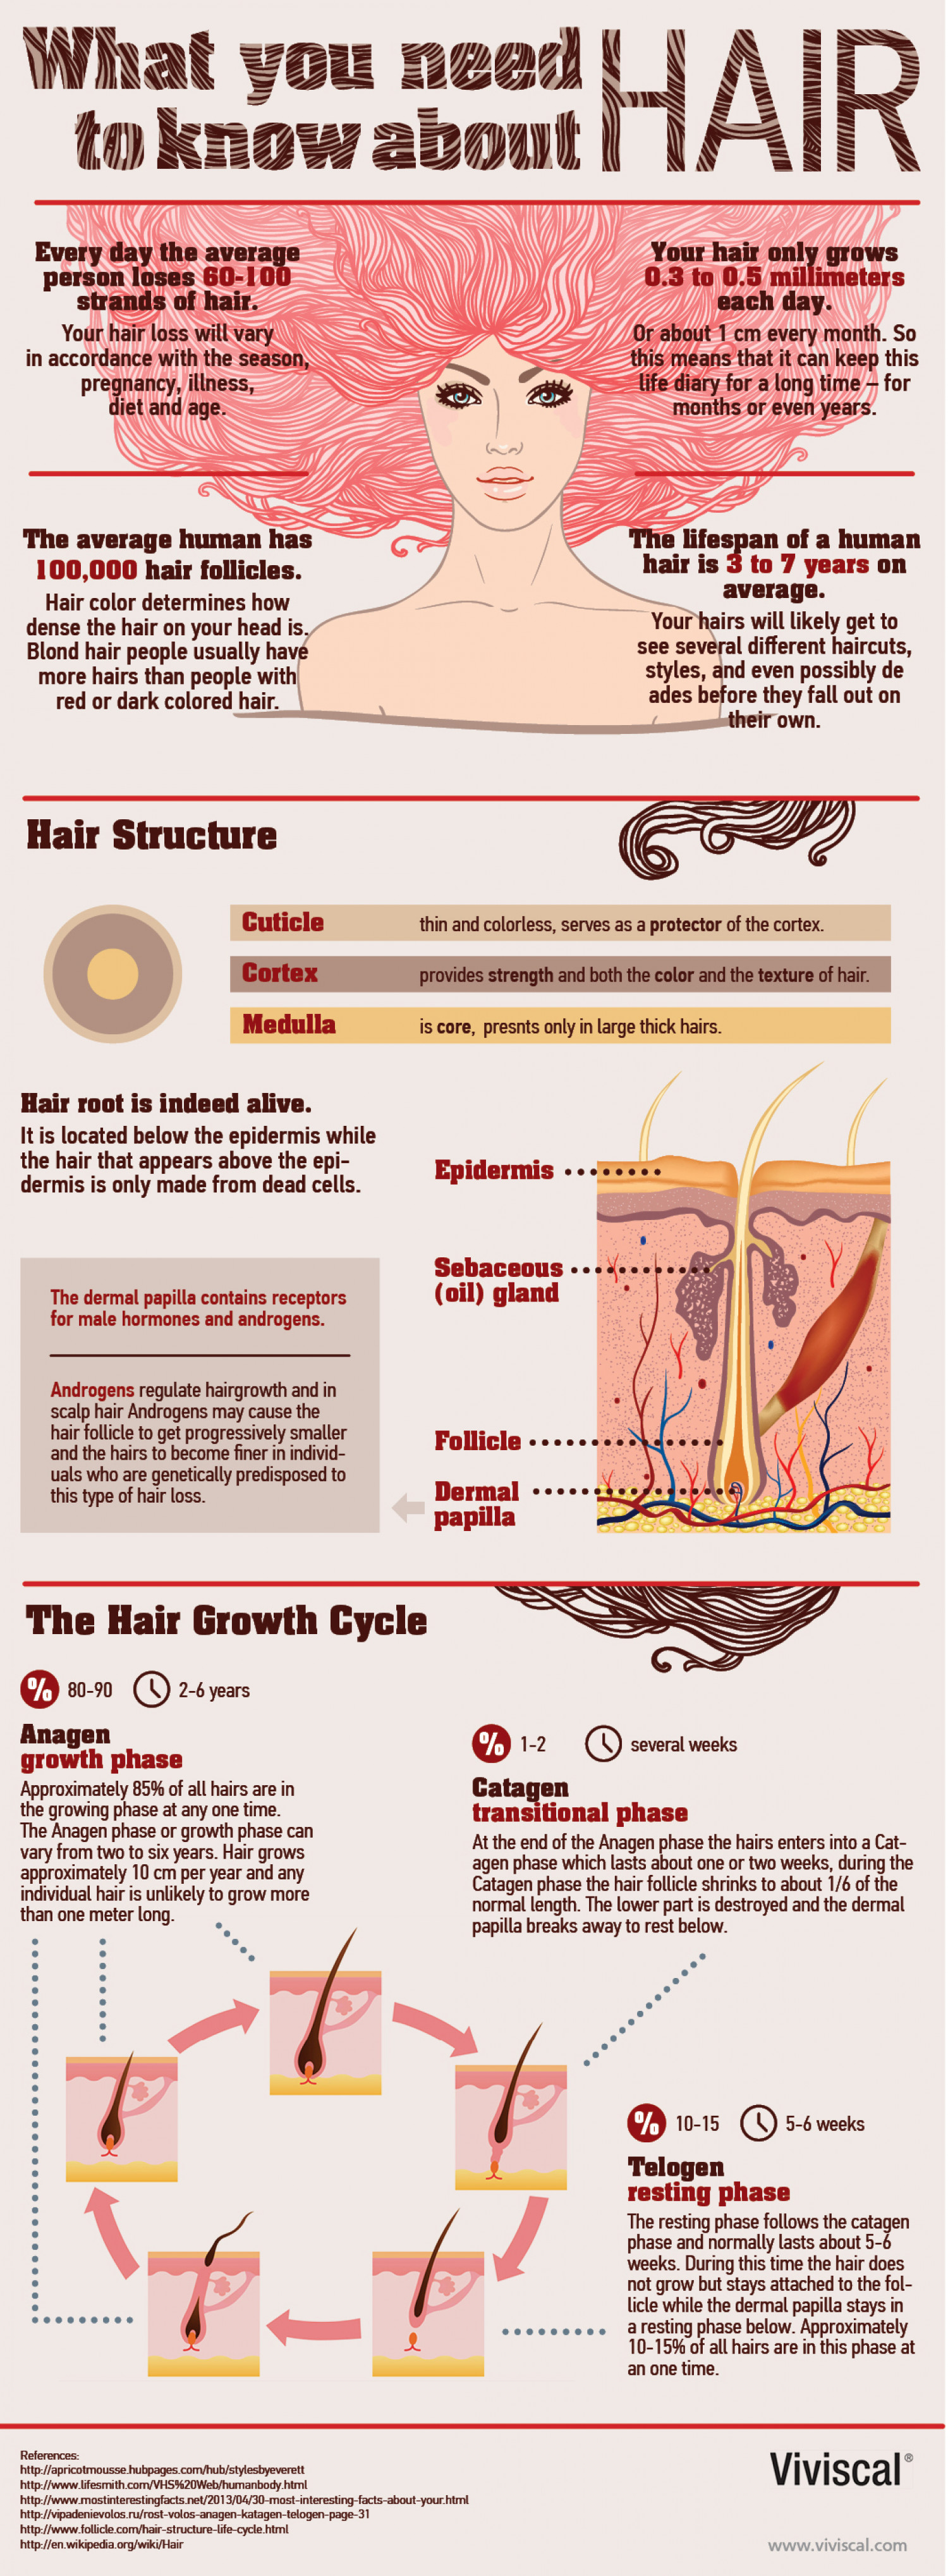 What you need to know about hair. Infographic